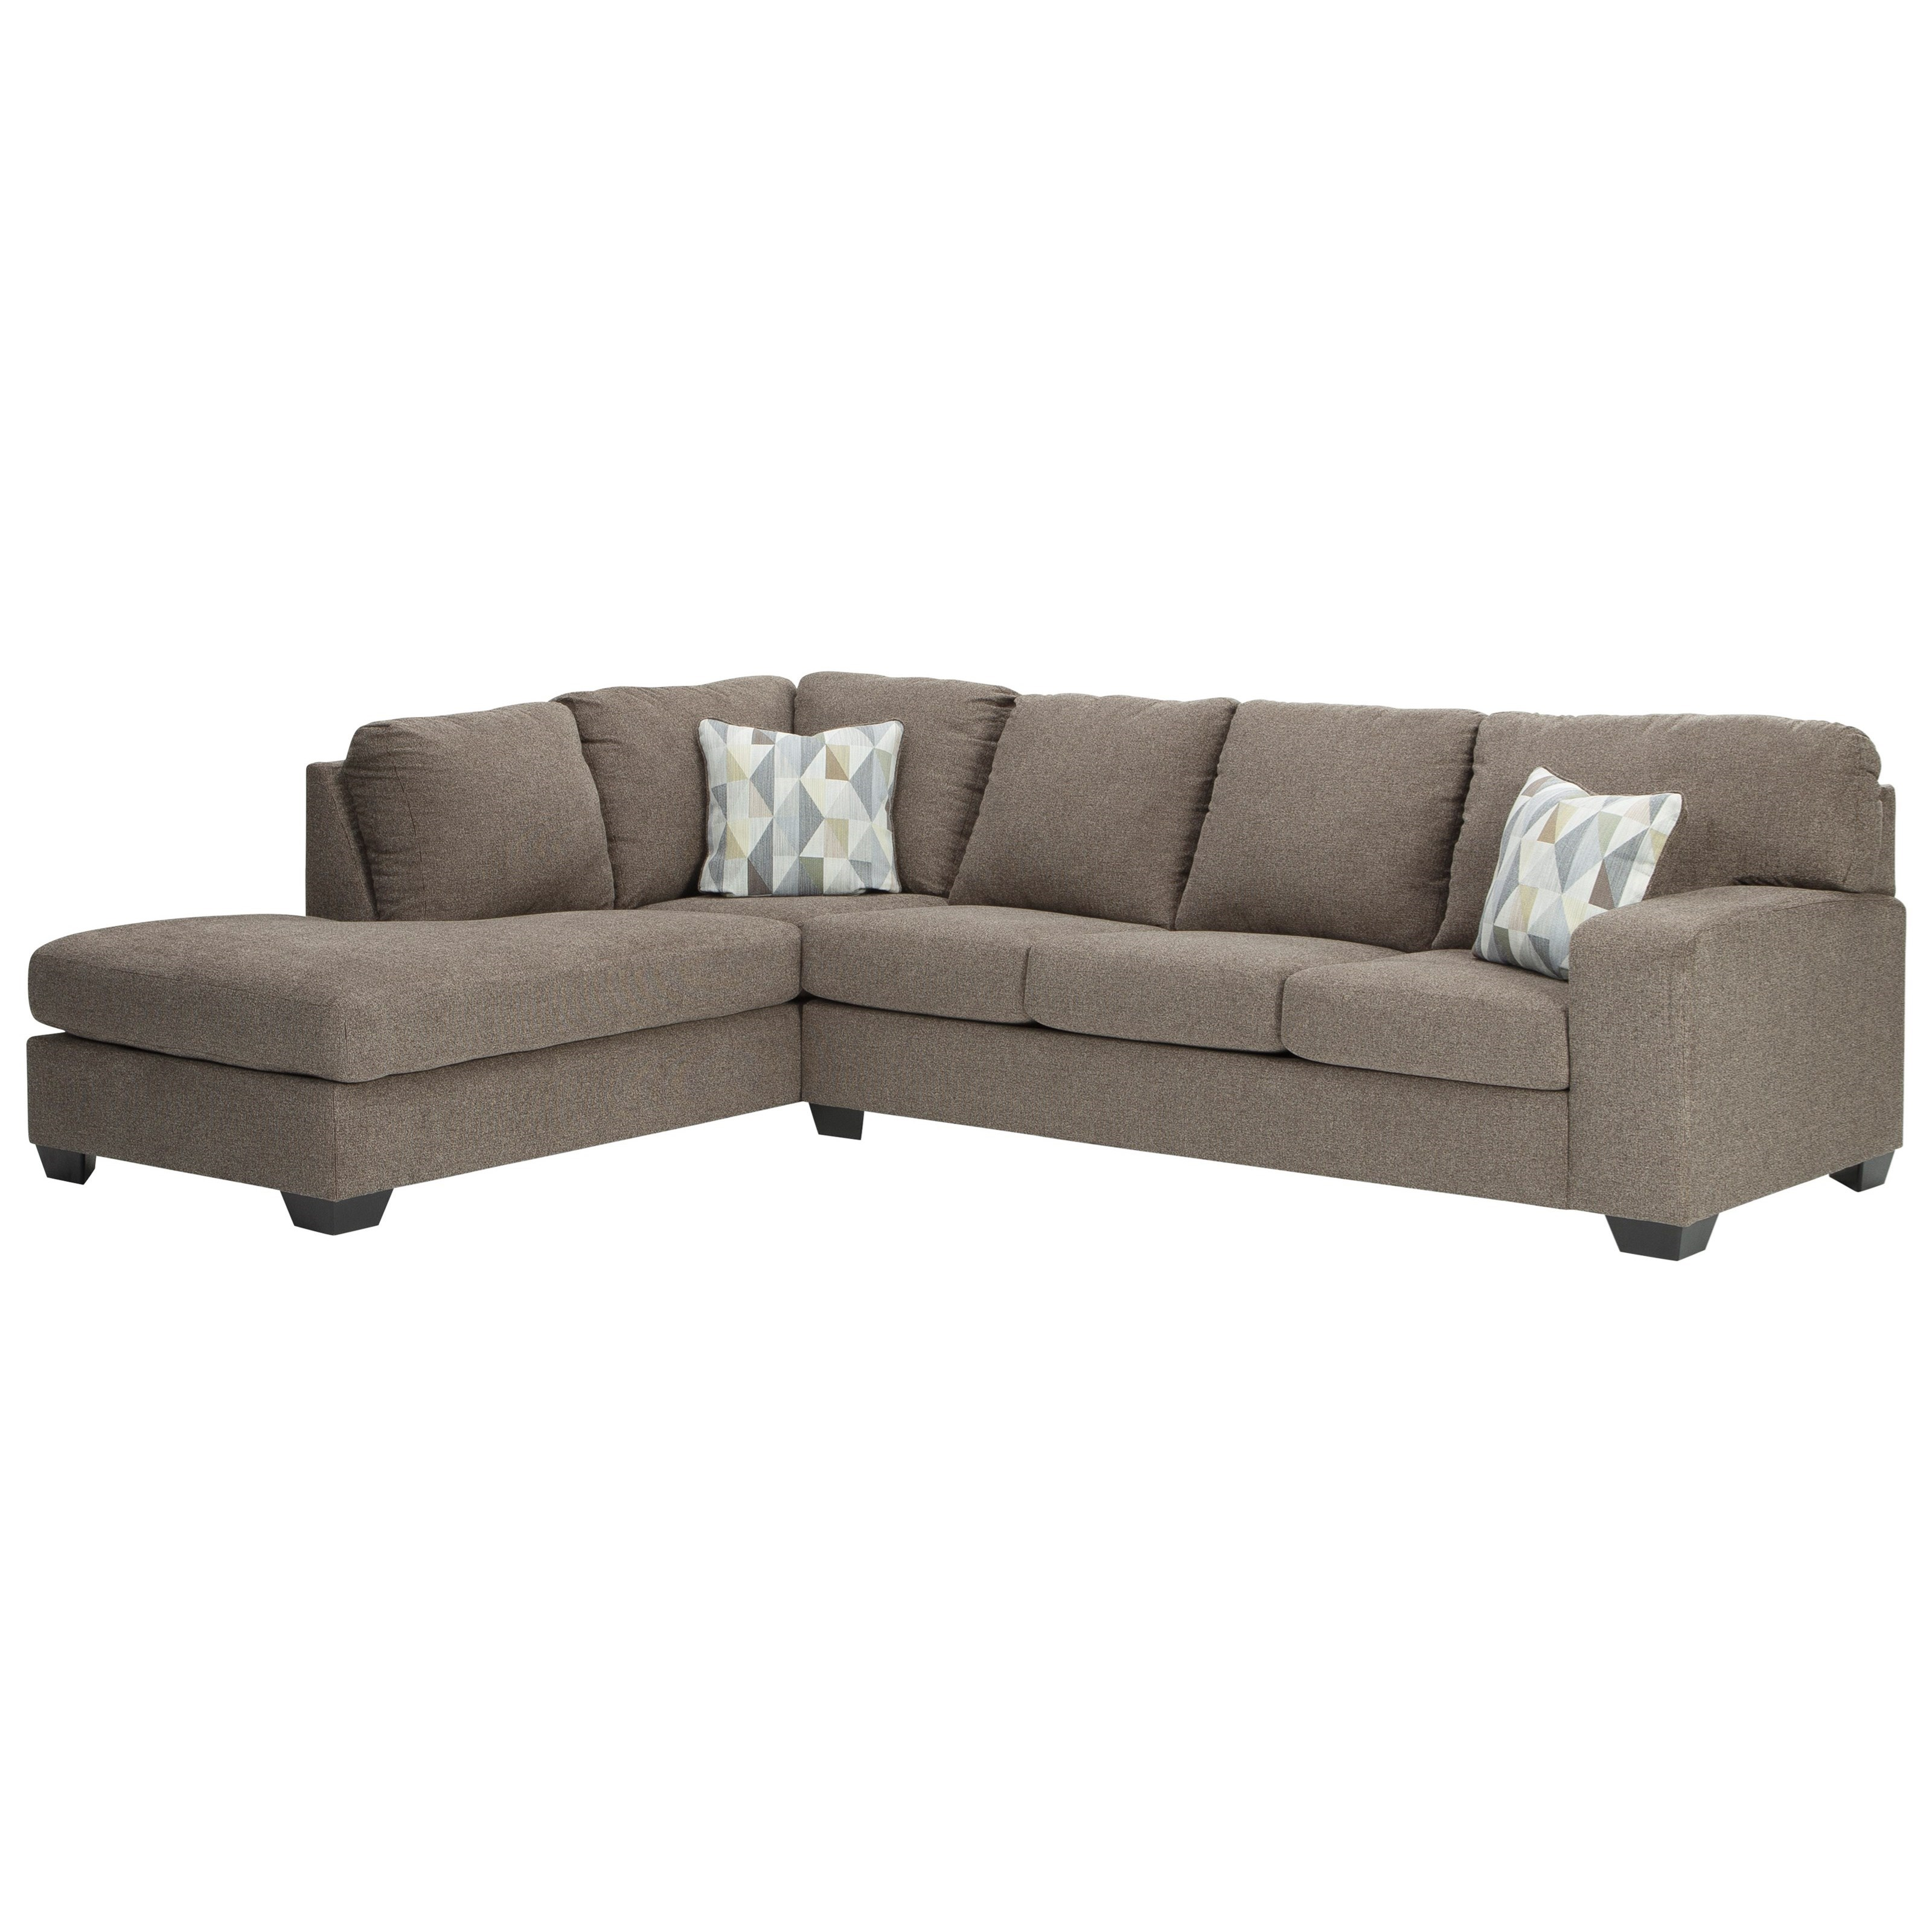 Dalhart 2-Piece Sectional by Benchcraft at Walker's Furniture